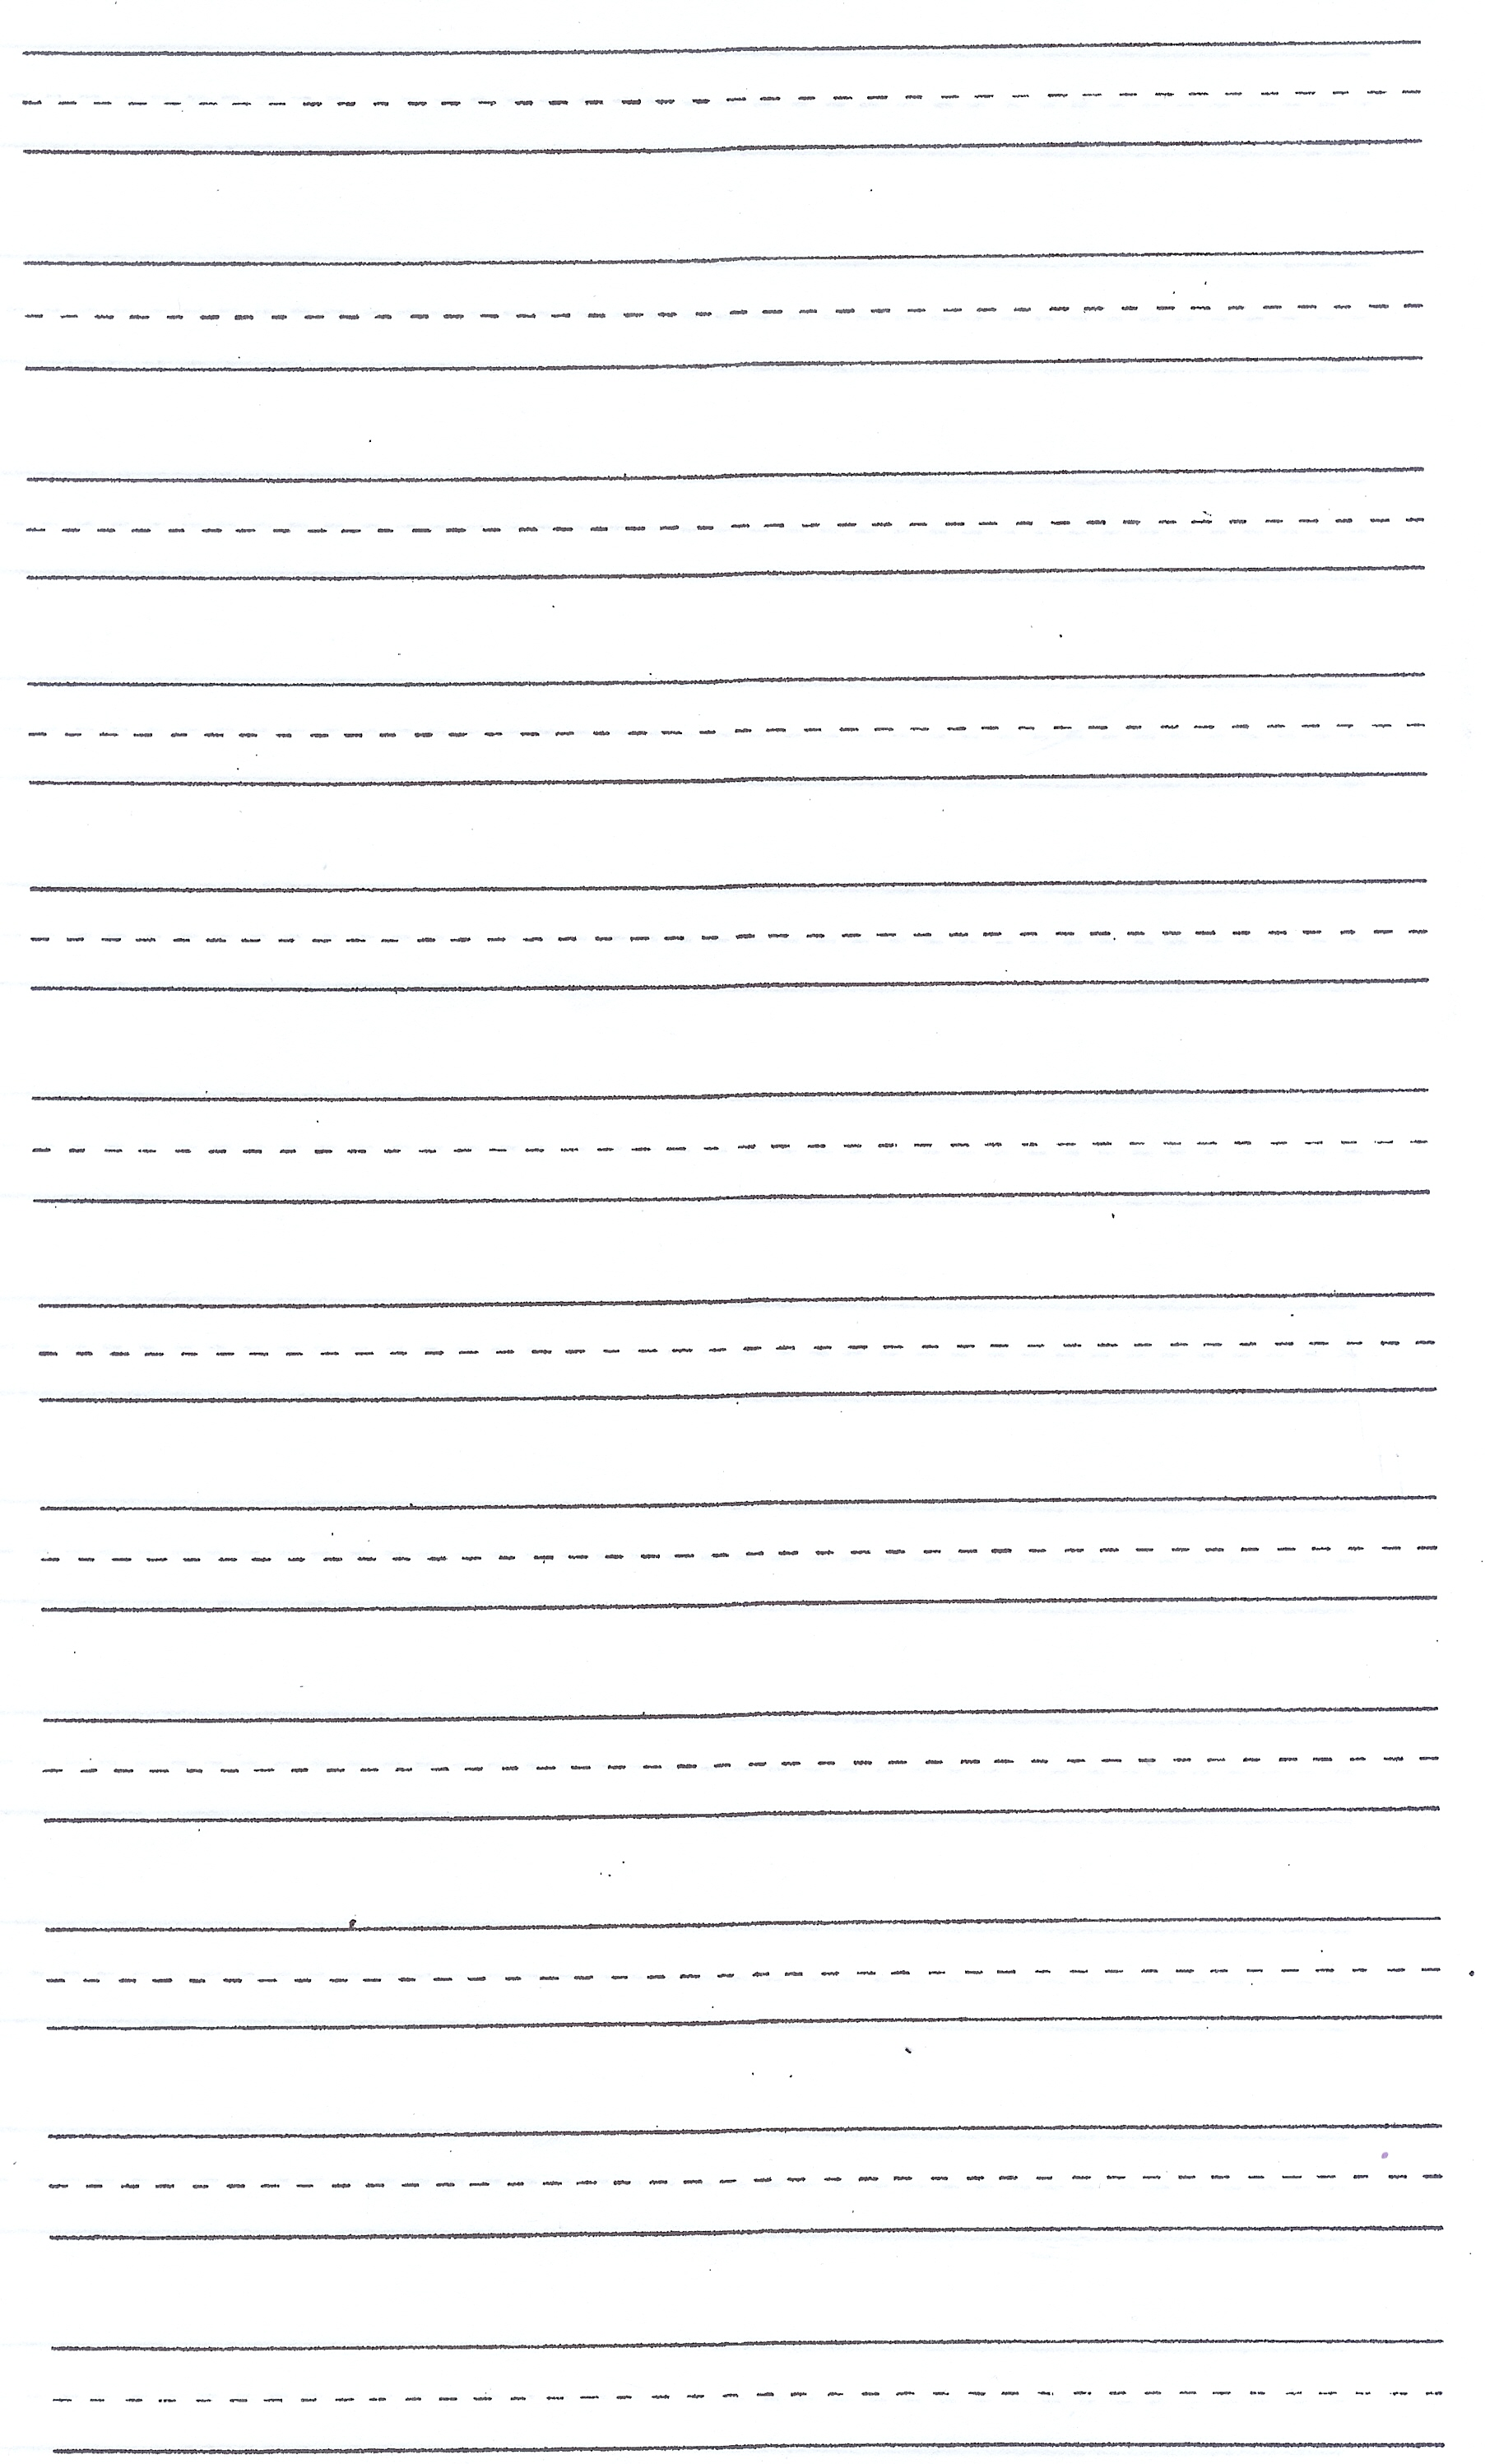 Printable Writing Paper For Elementary Students